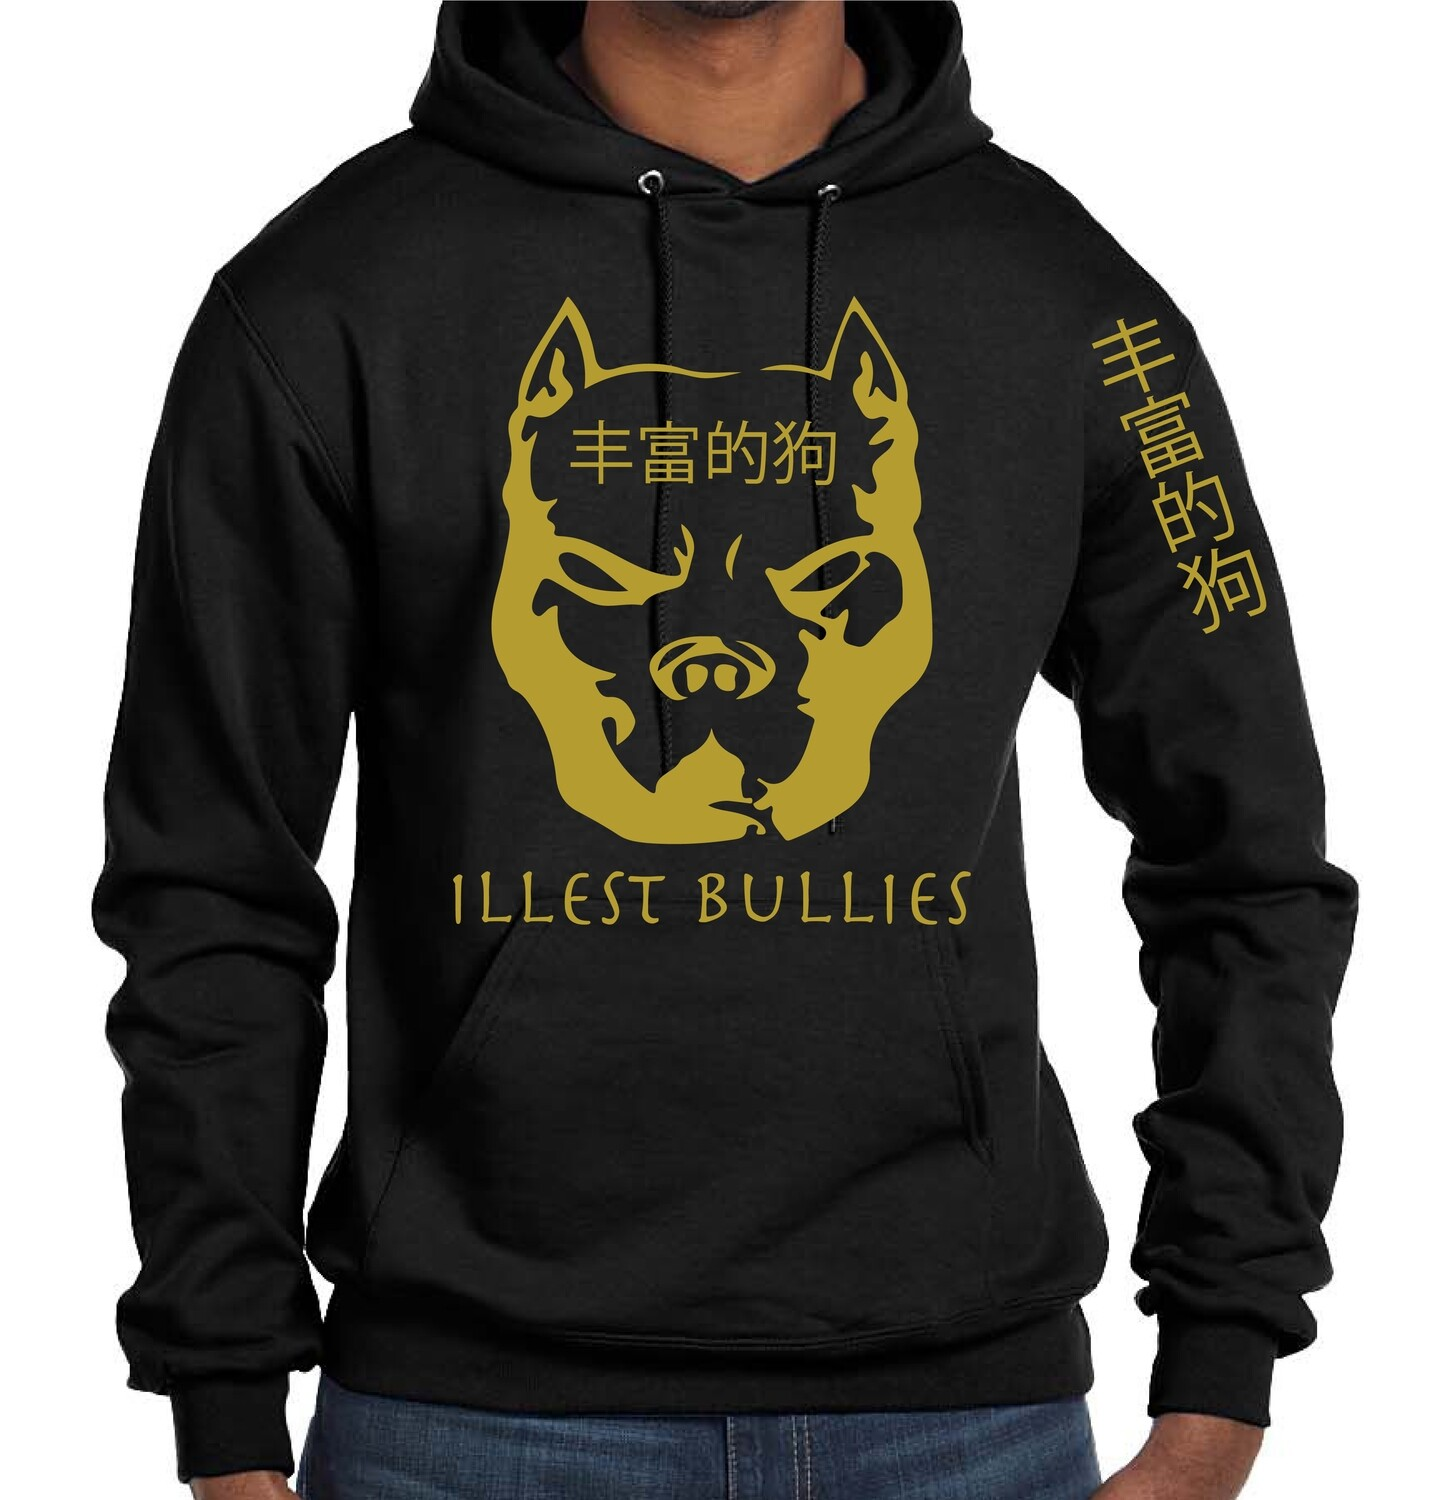 Illest Bullies Black Full Chest/Arm Hoodie